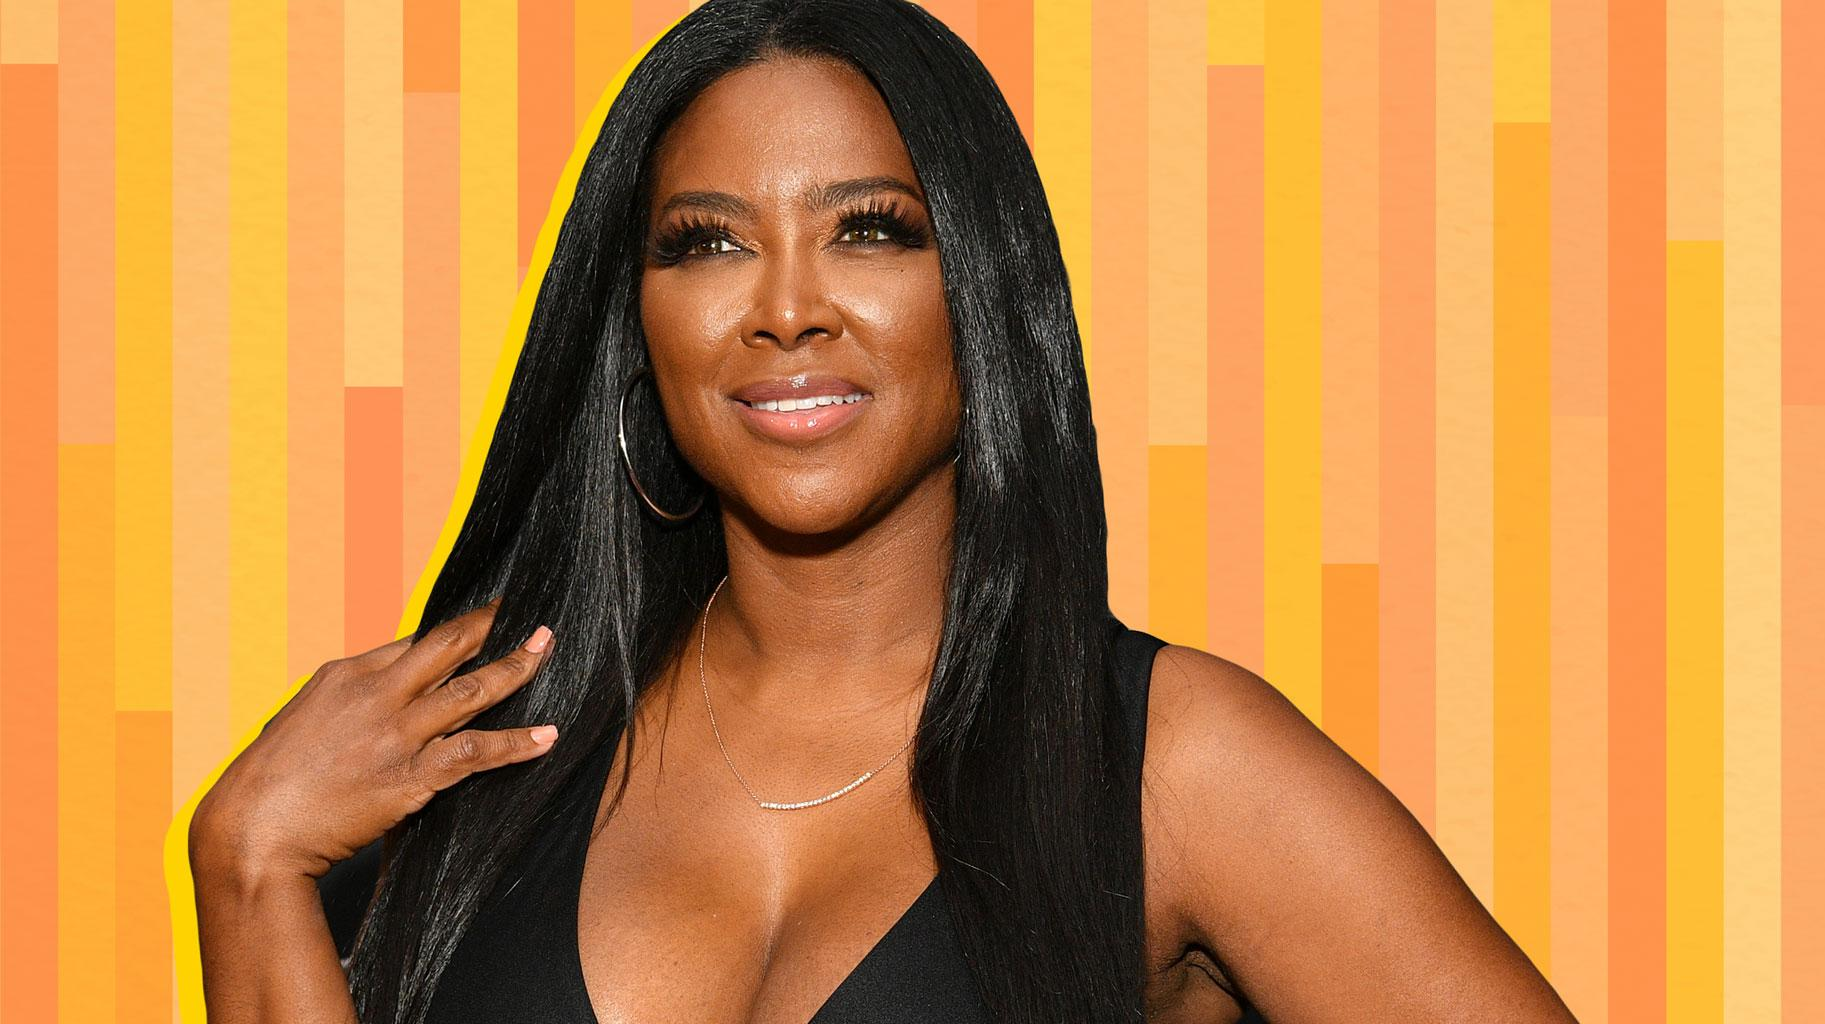 Kenya Moore Is Fighting To Help Combat Maternal Mortality